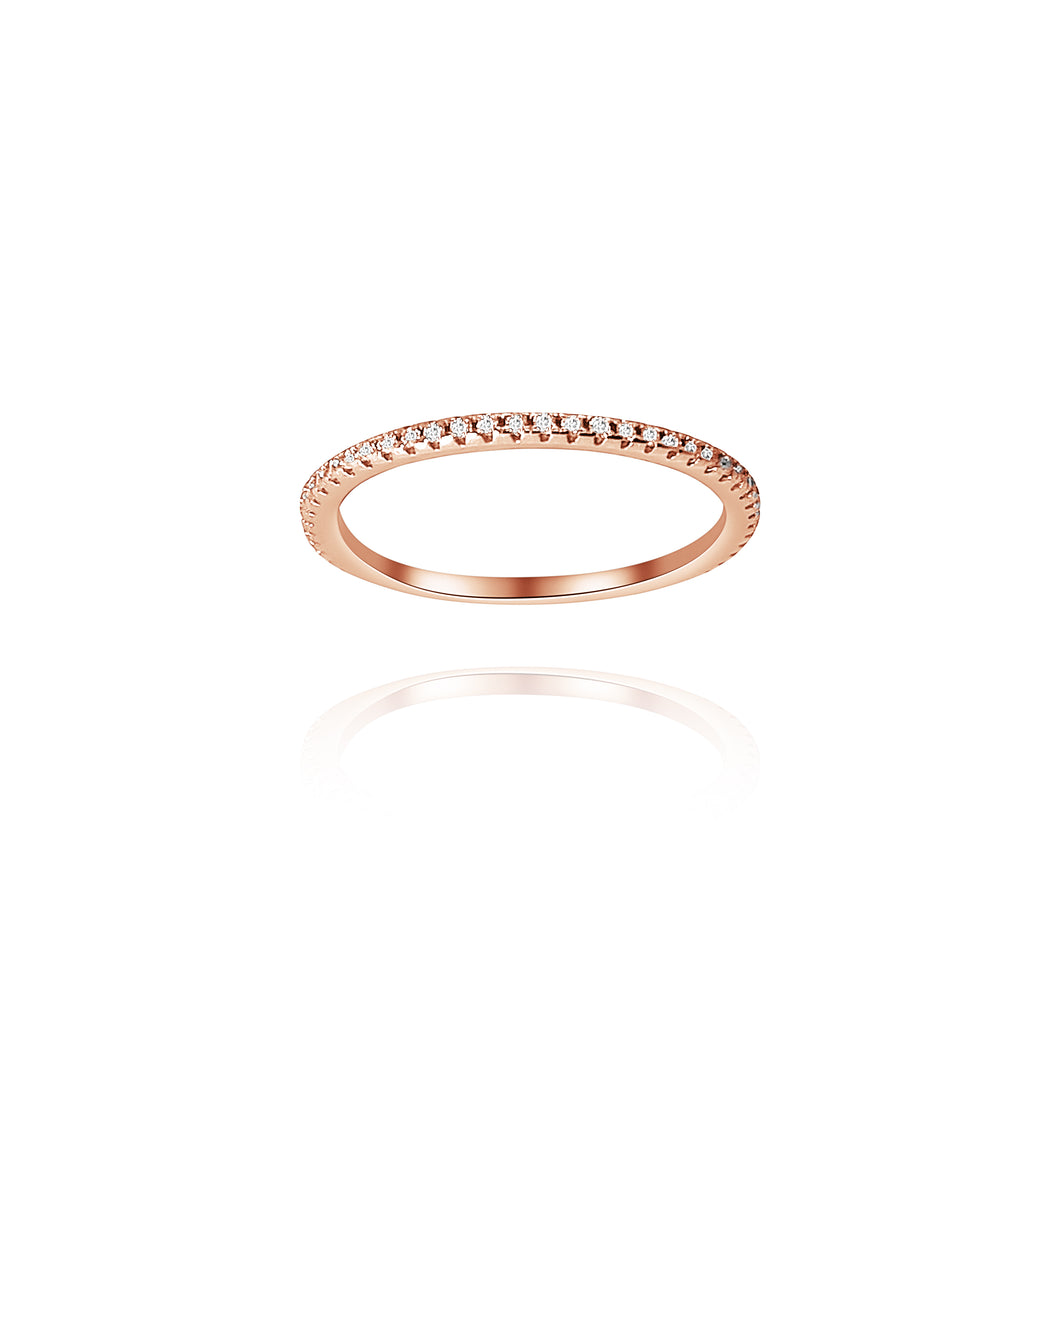 Infinity Band Rose Gold - Gold Plated 925 Sterling Silver